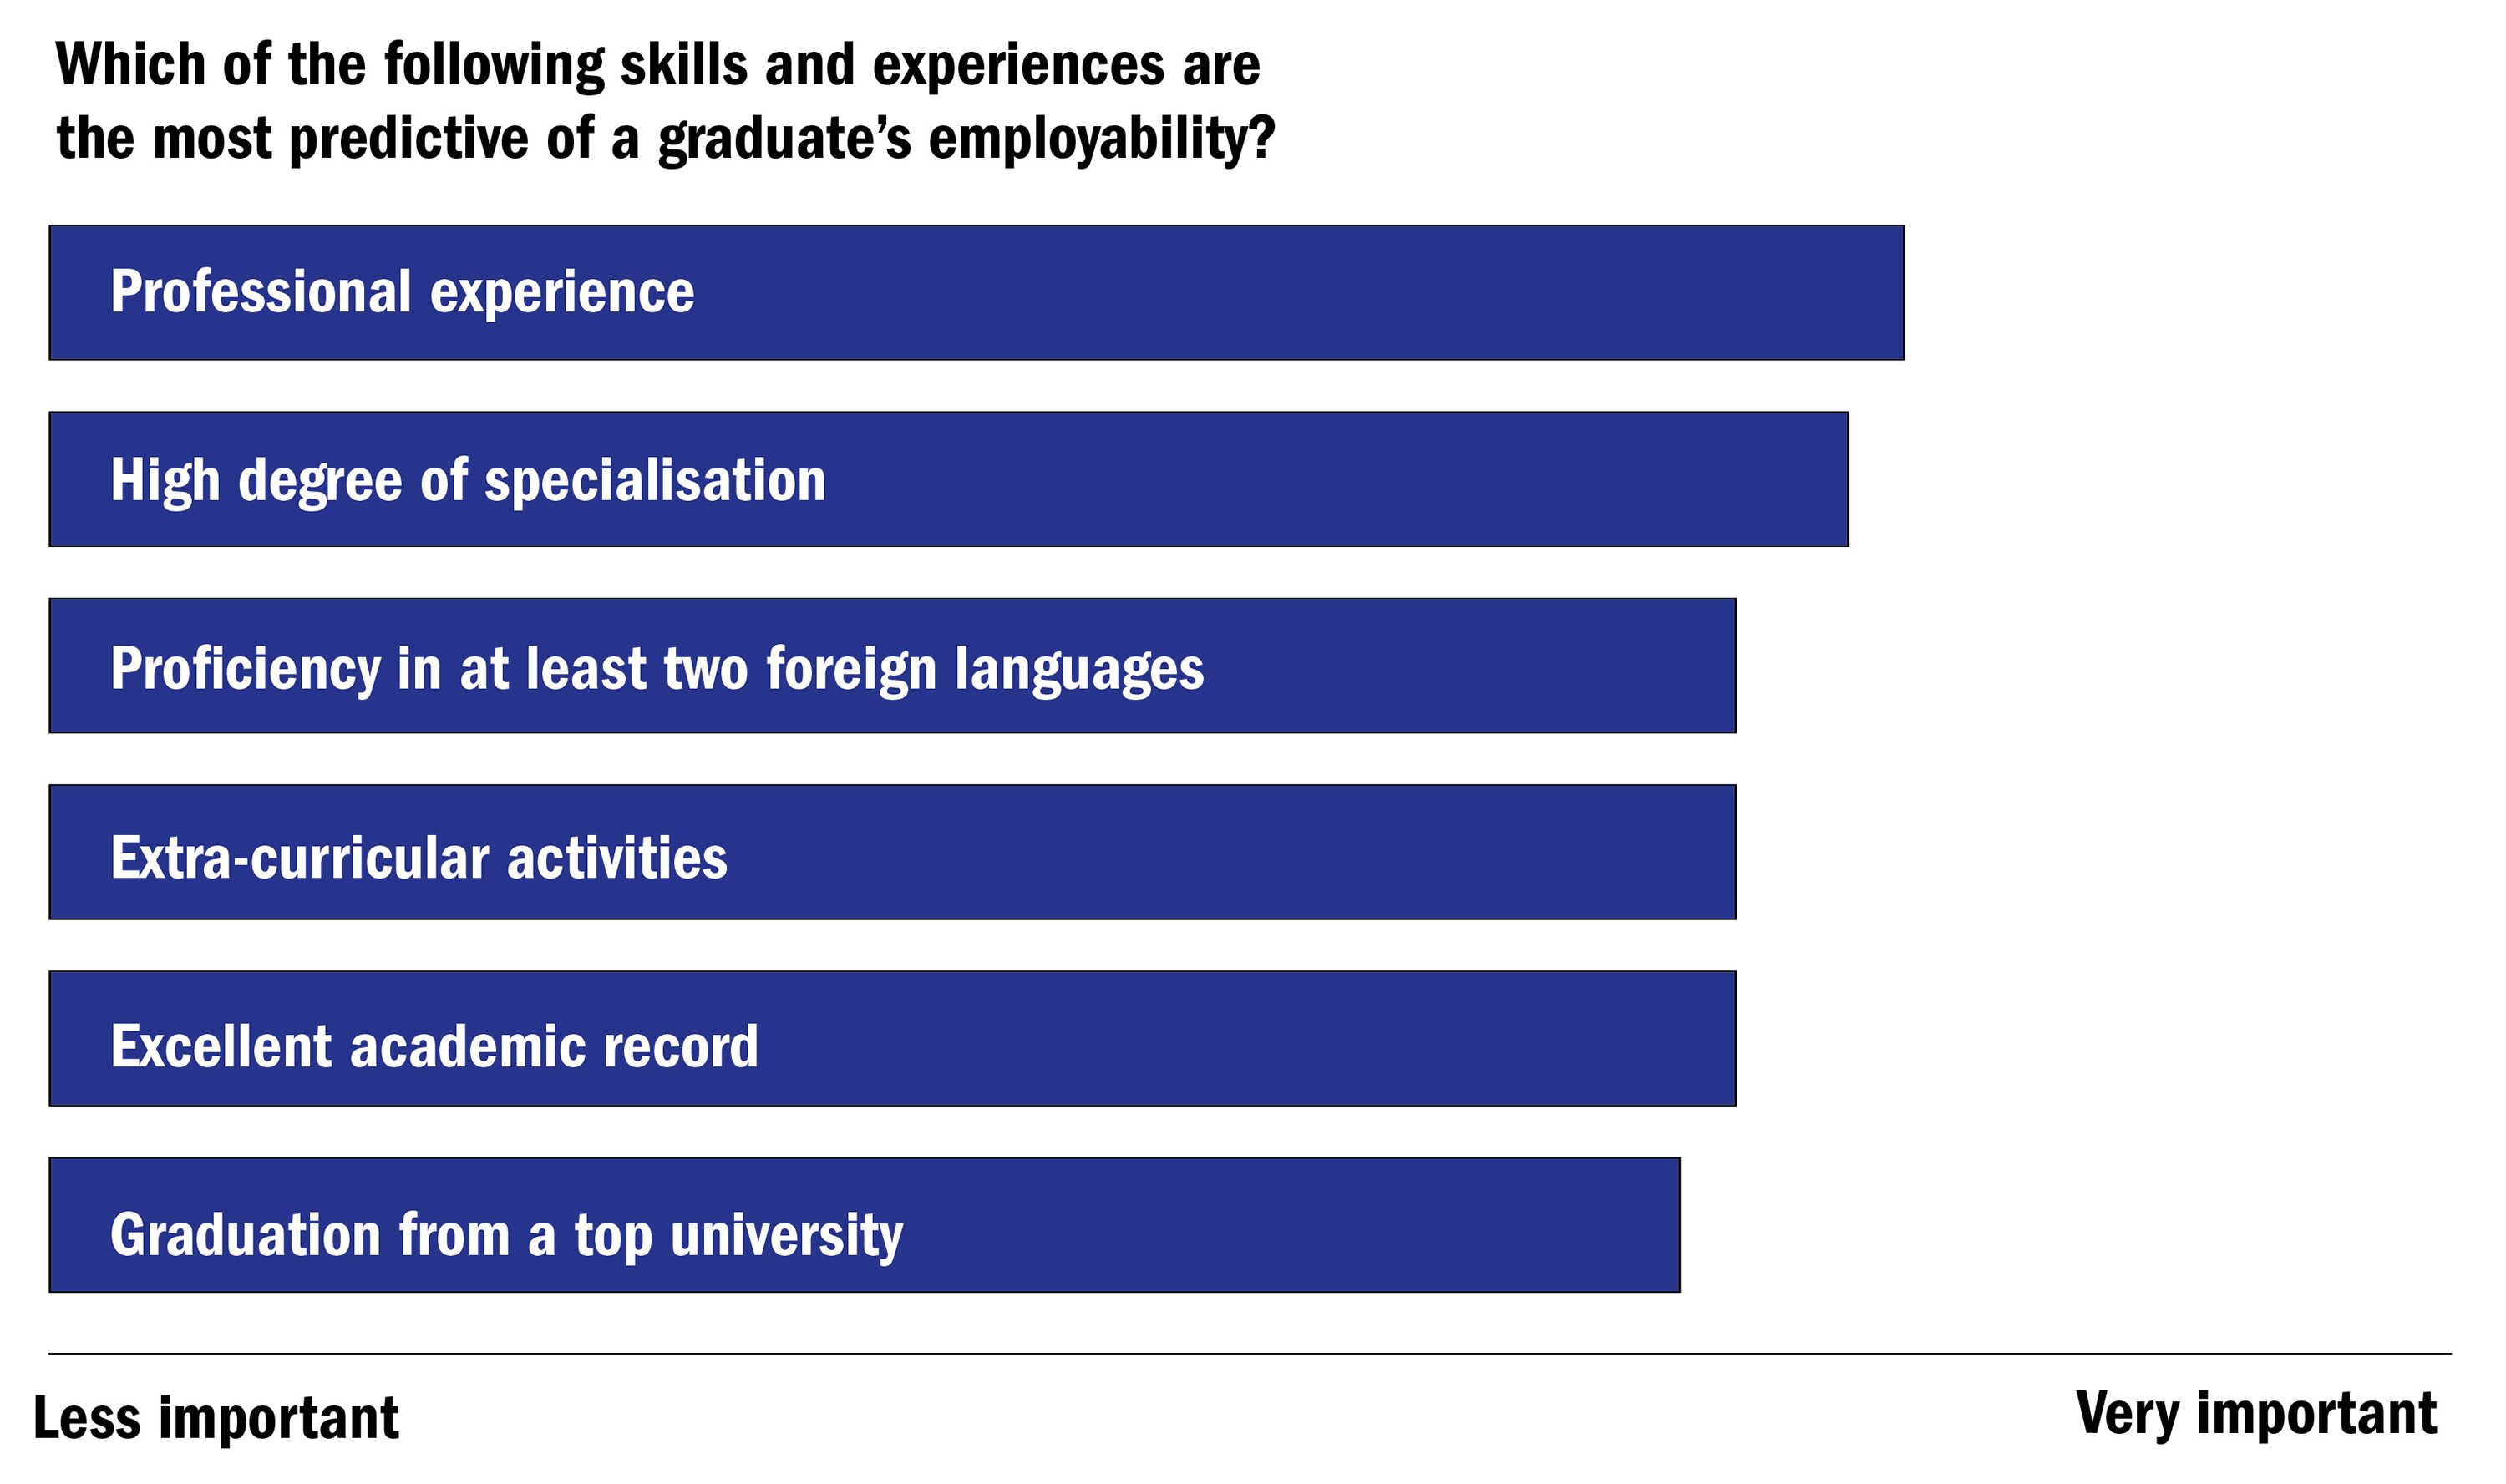 the global university employability ranking the features which of the following skills and experiences are the most predictive of a graduate s employability